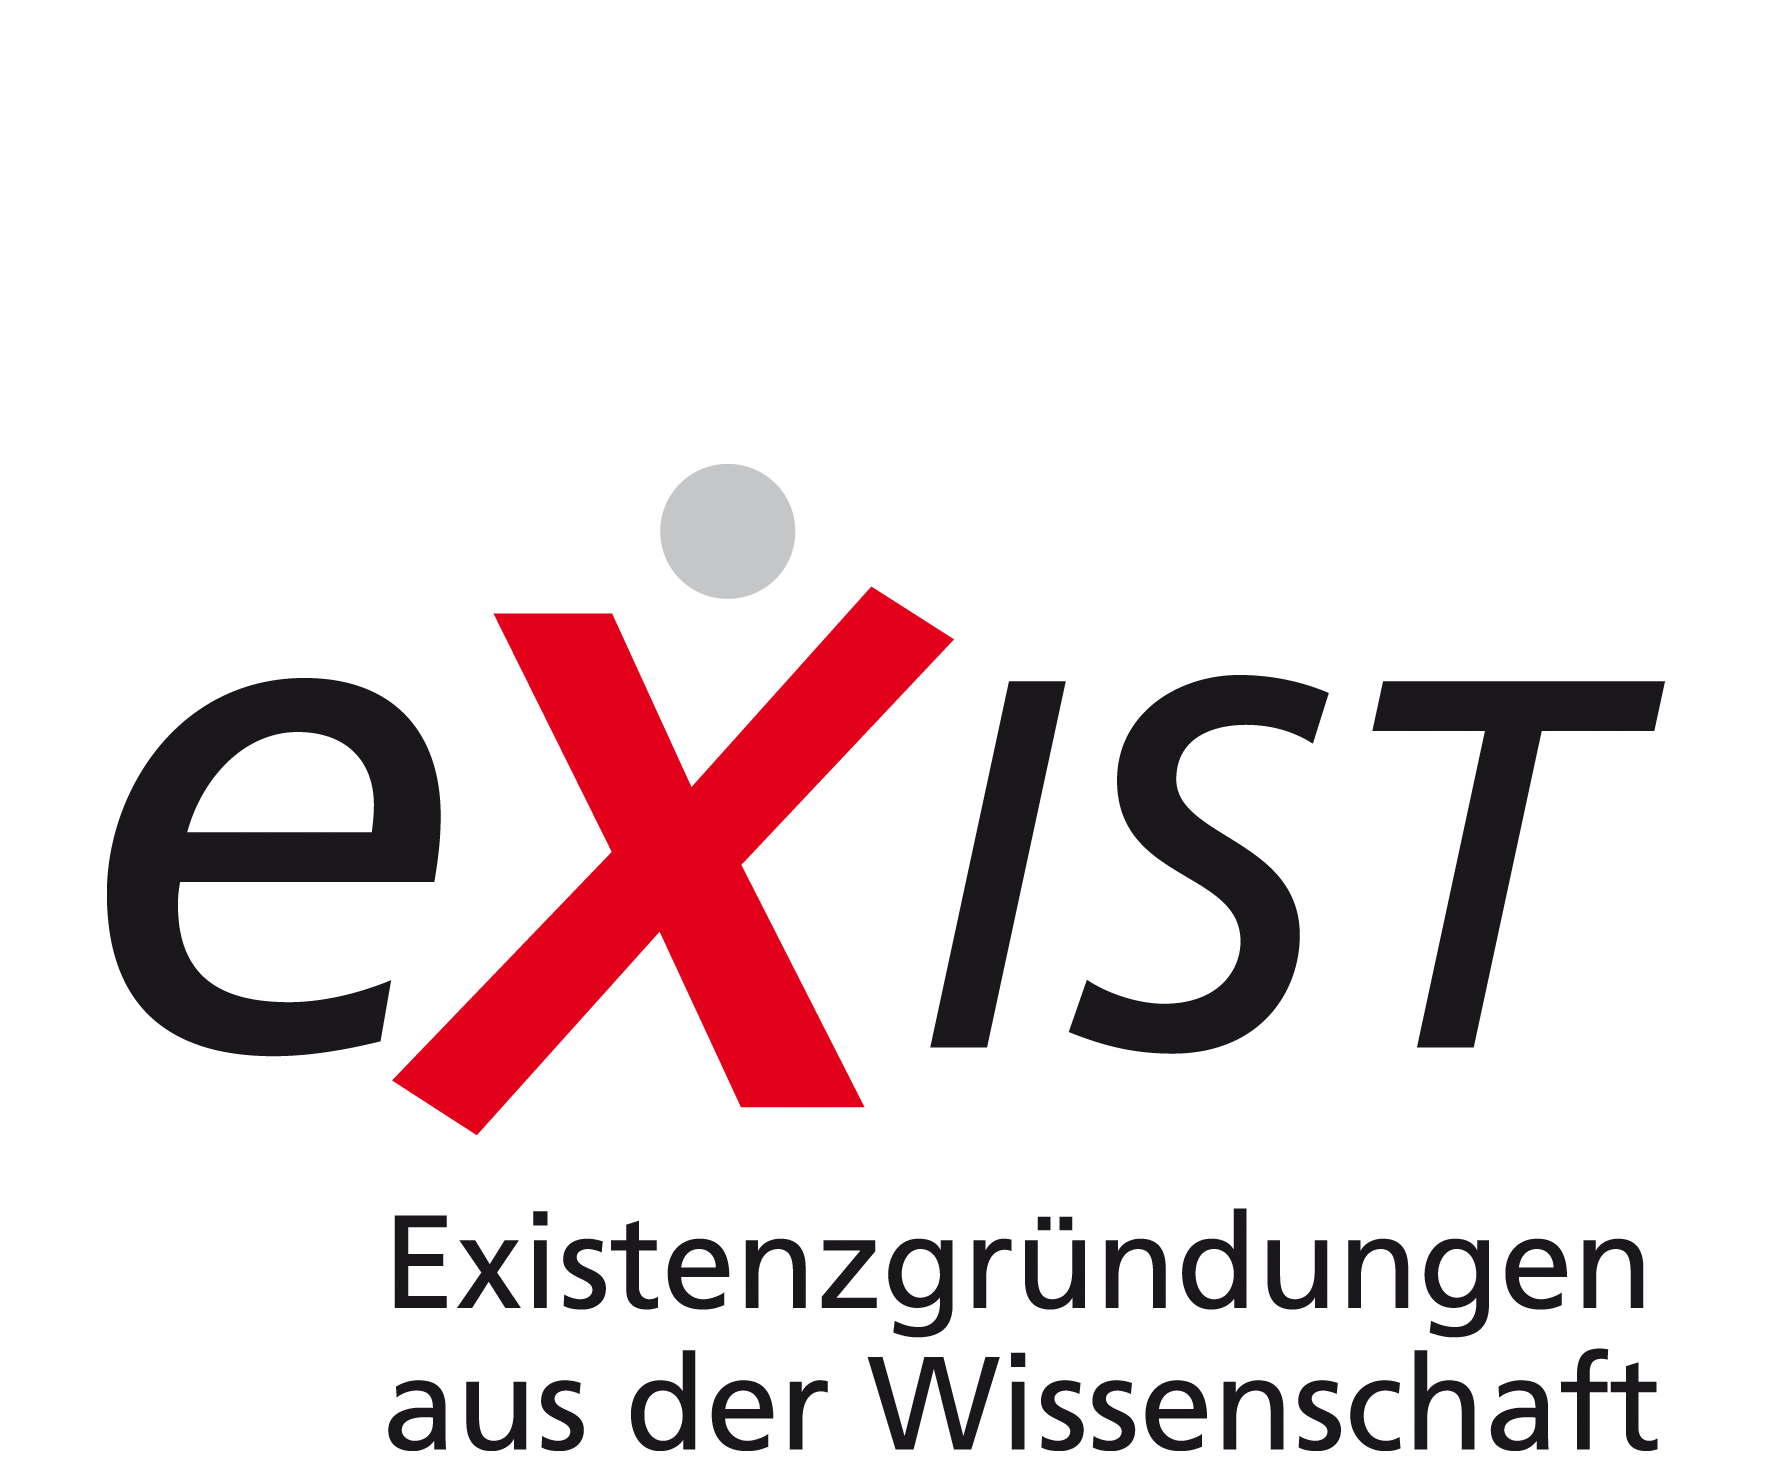 EXIST Startup Grant